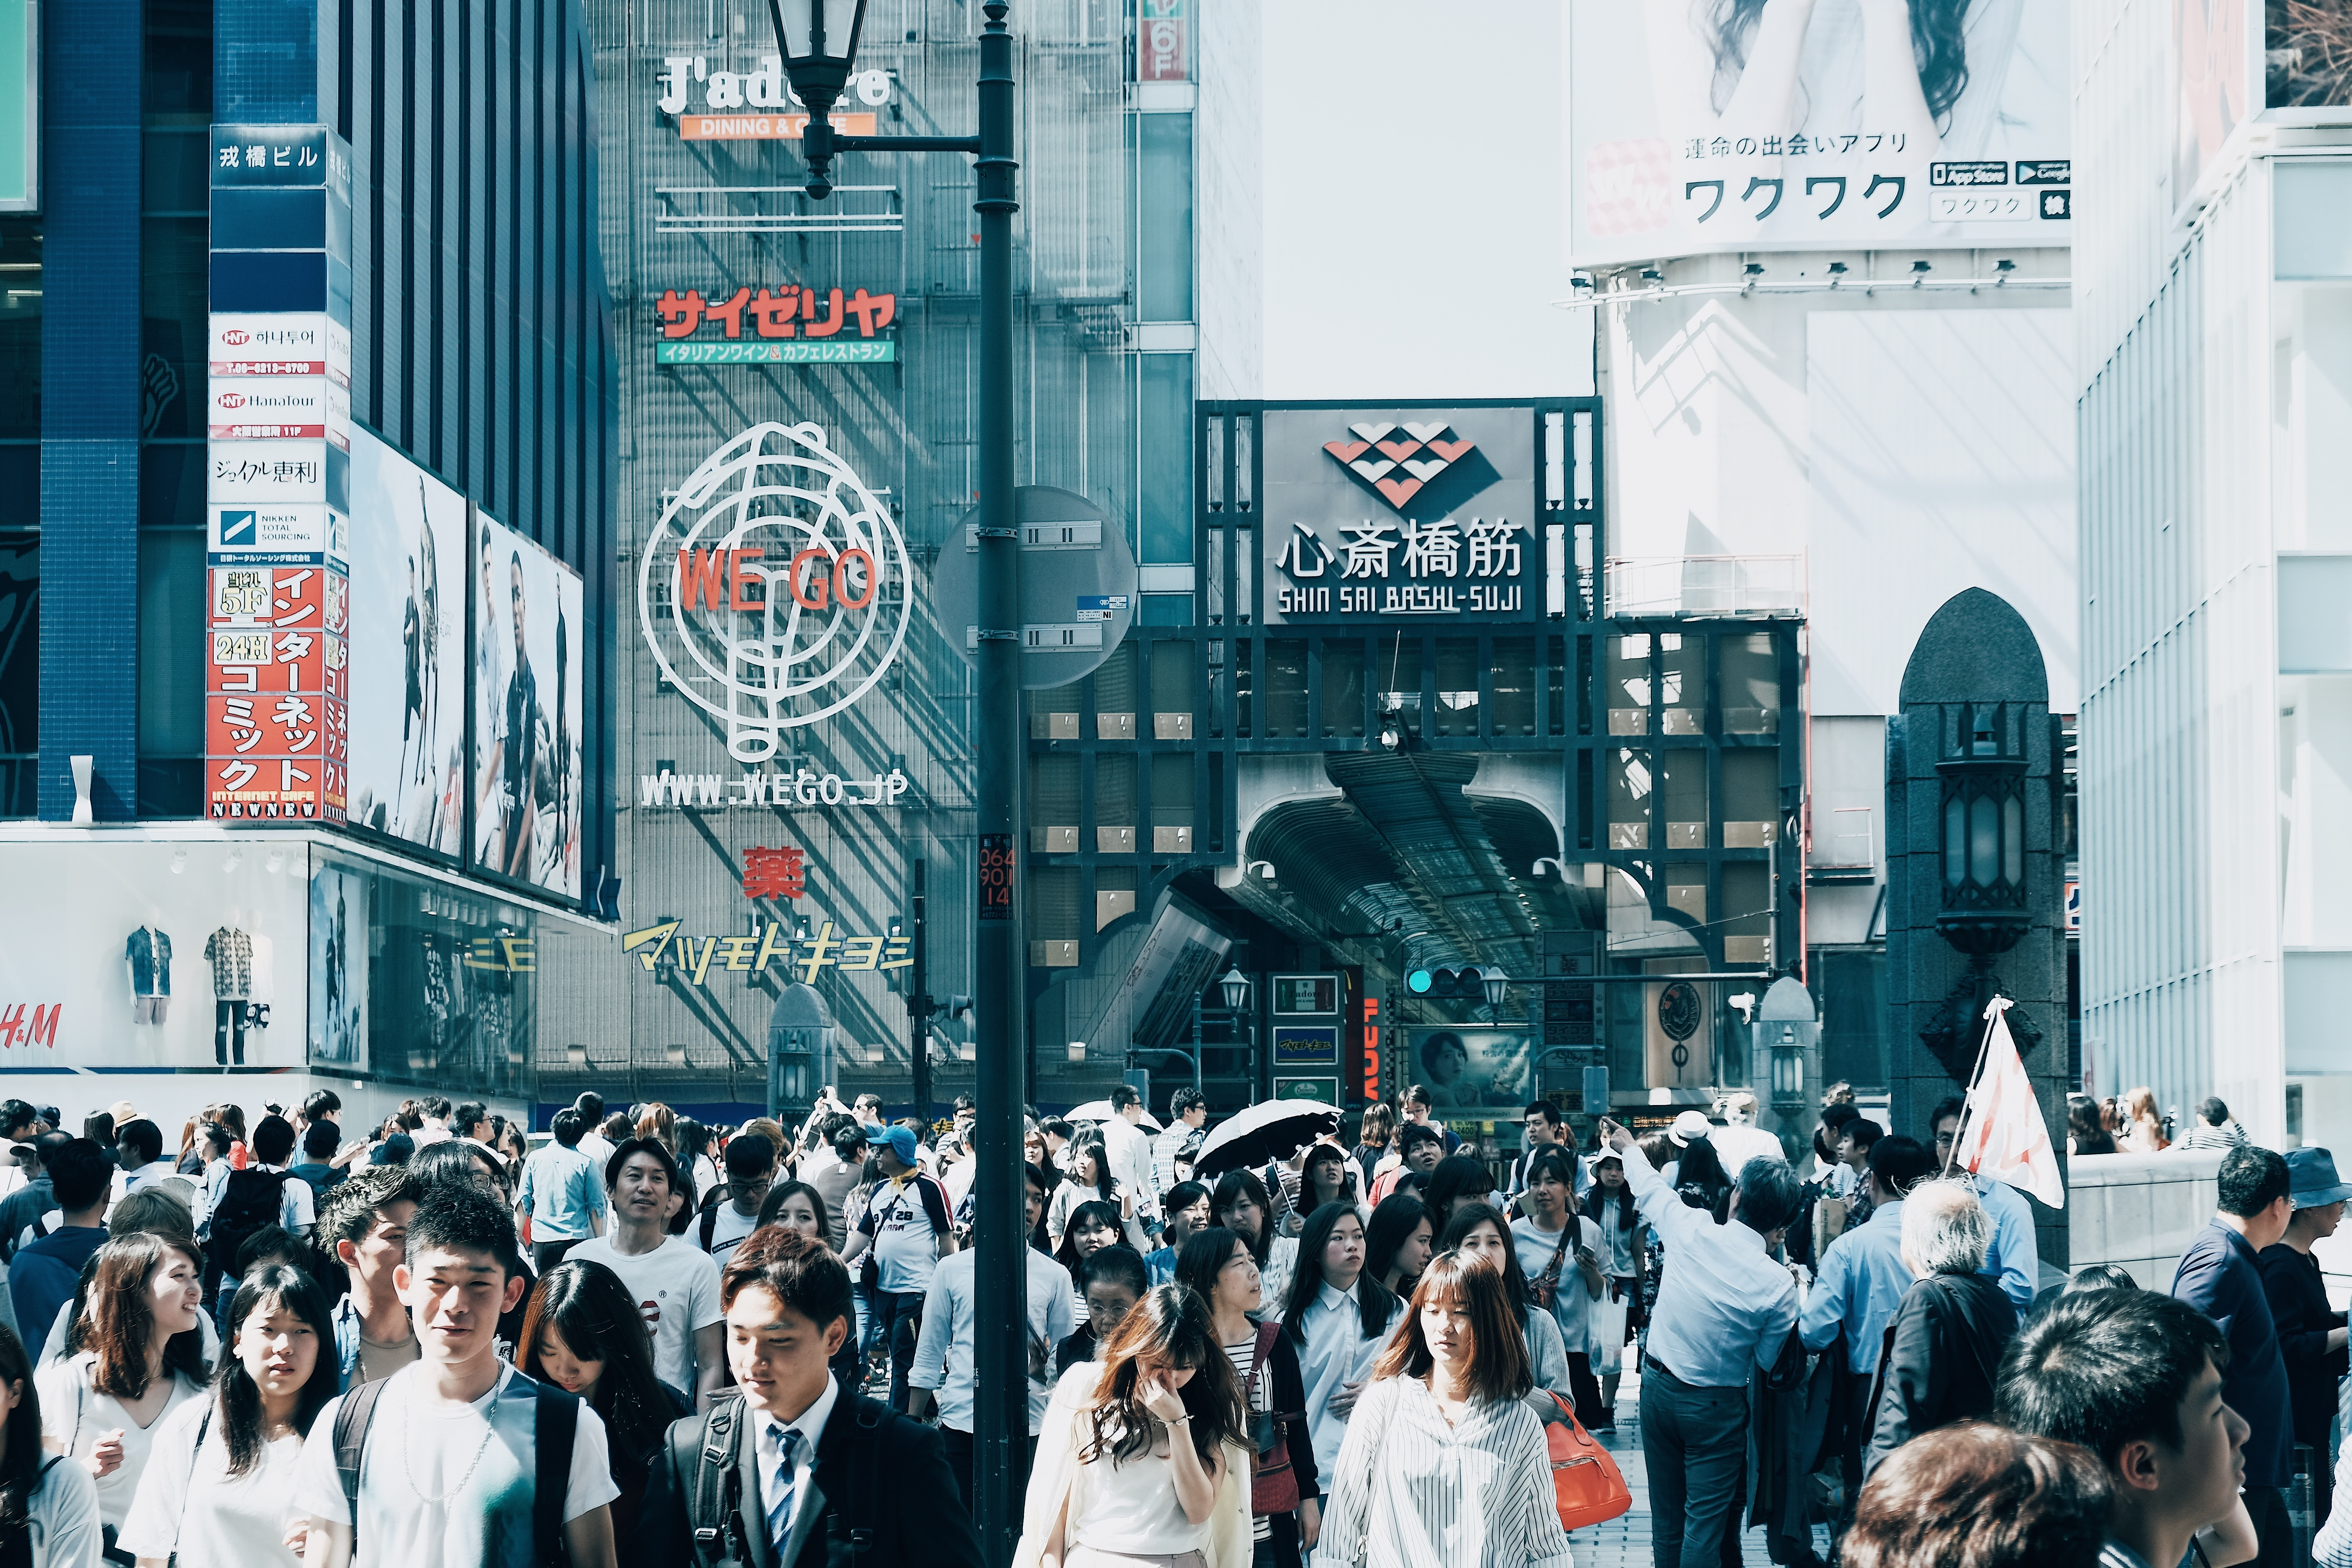 People in business attire in a crowded street in Japan